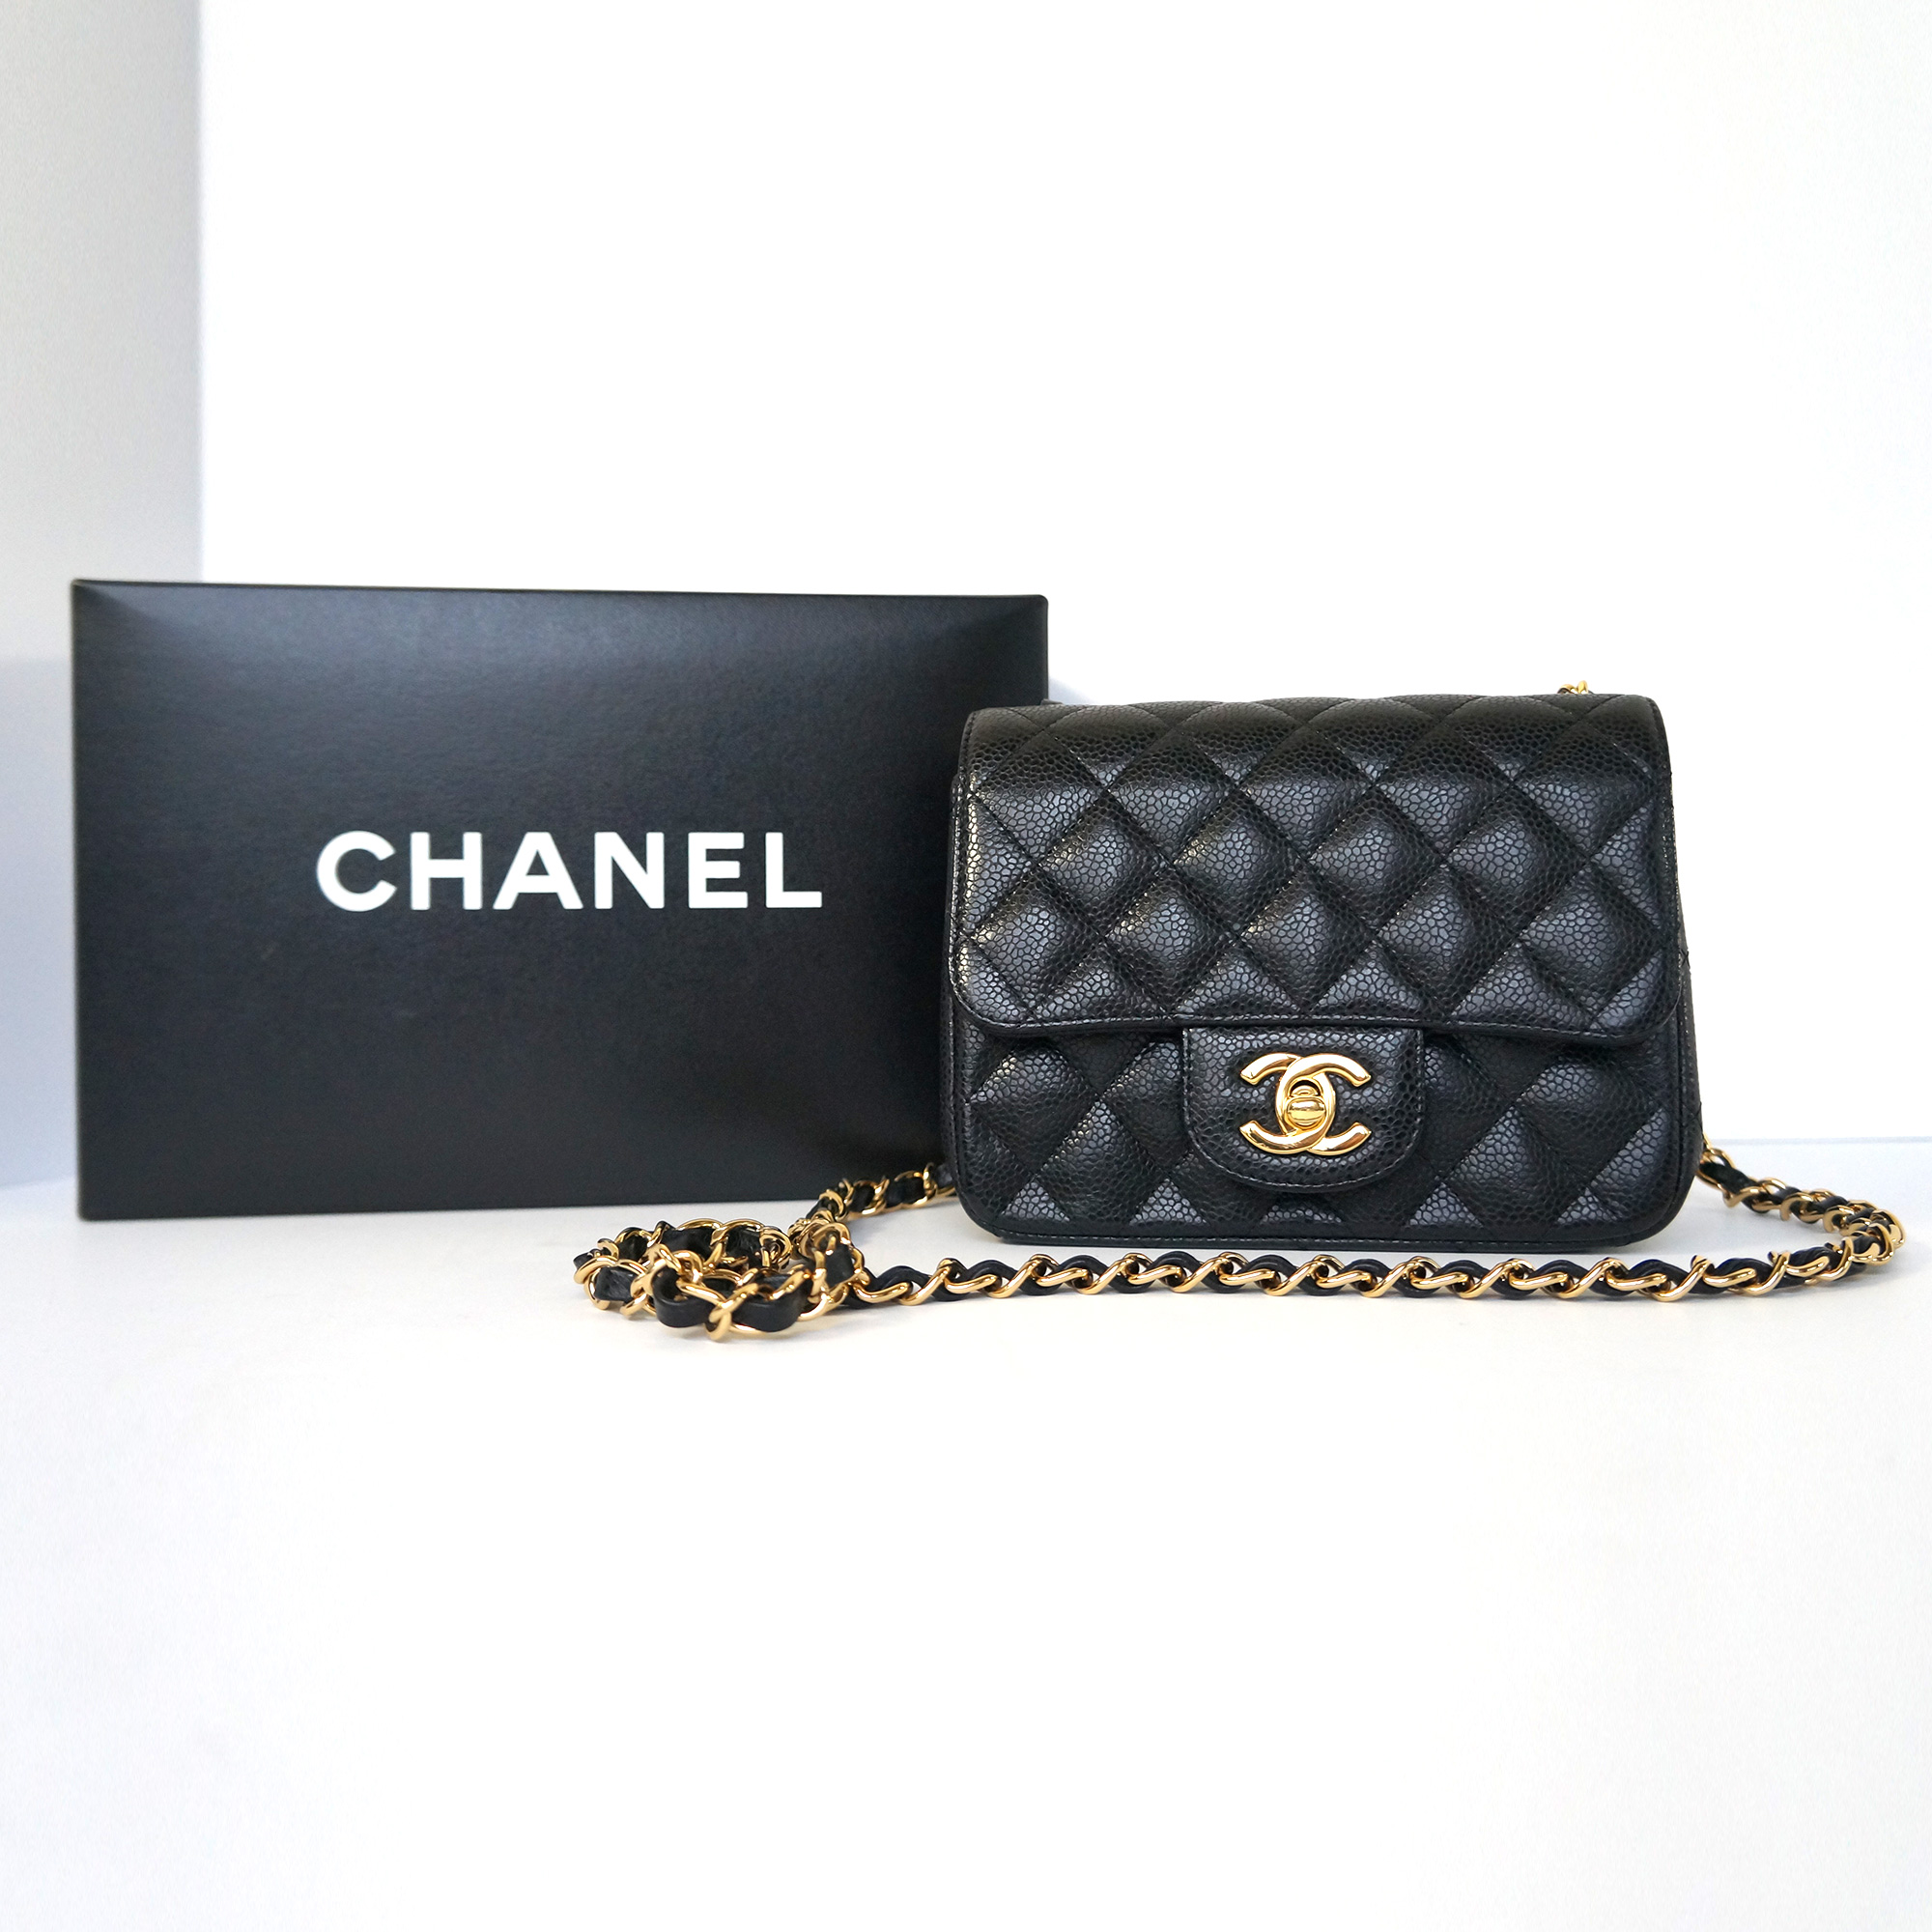 f5e29f2a294ac2 Chanel Classic Square Mini Flap Bag Black Caviar Leather Gold ...